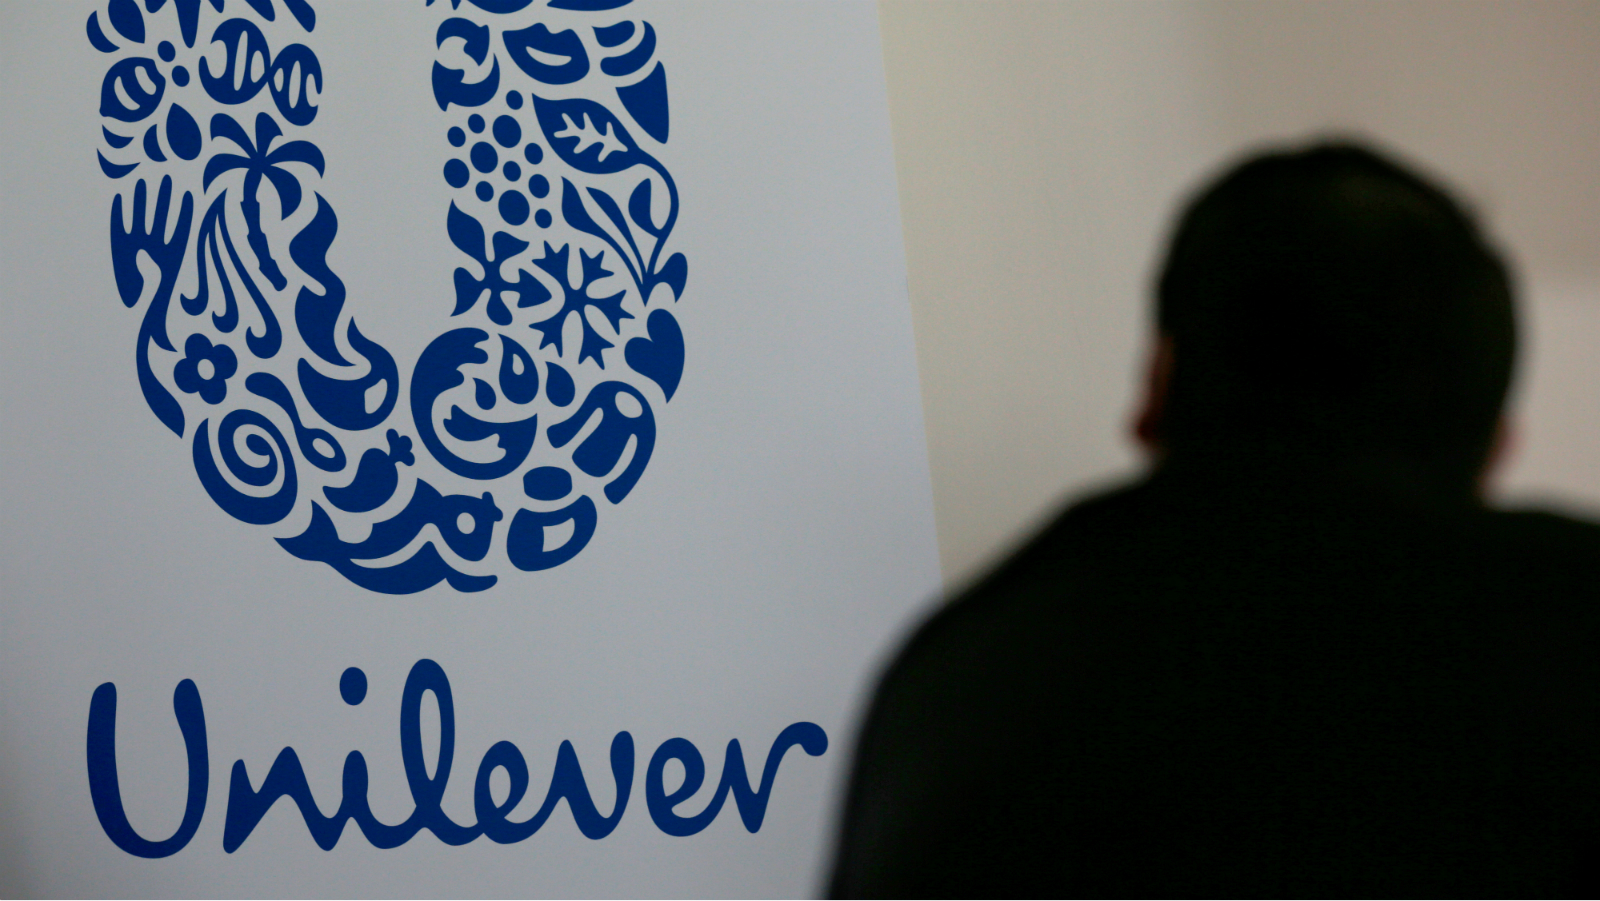 The logo of the Unilever group is seen at the Miko factory in Saint-Dizier, France, May 4, 2016.